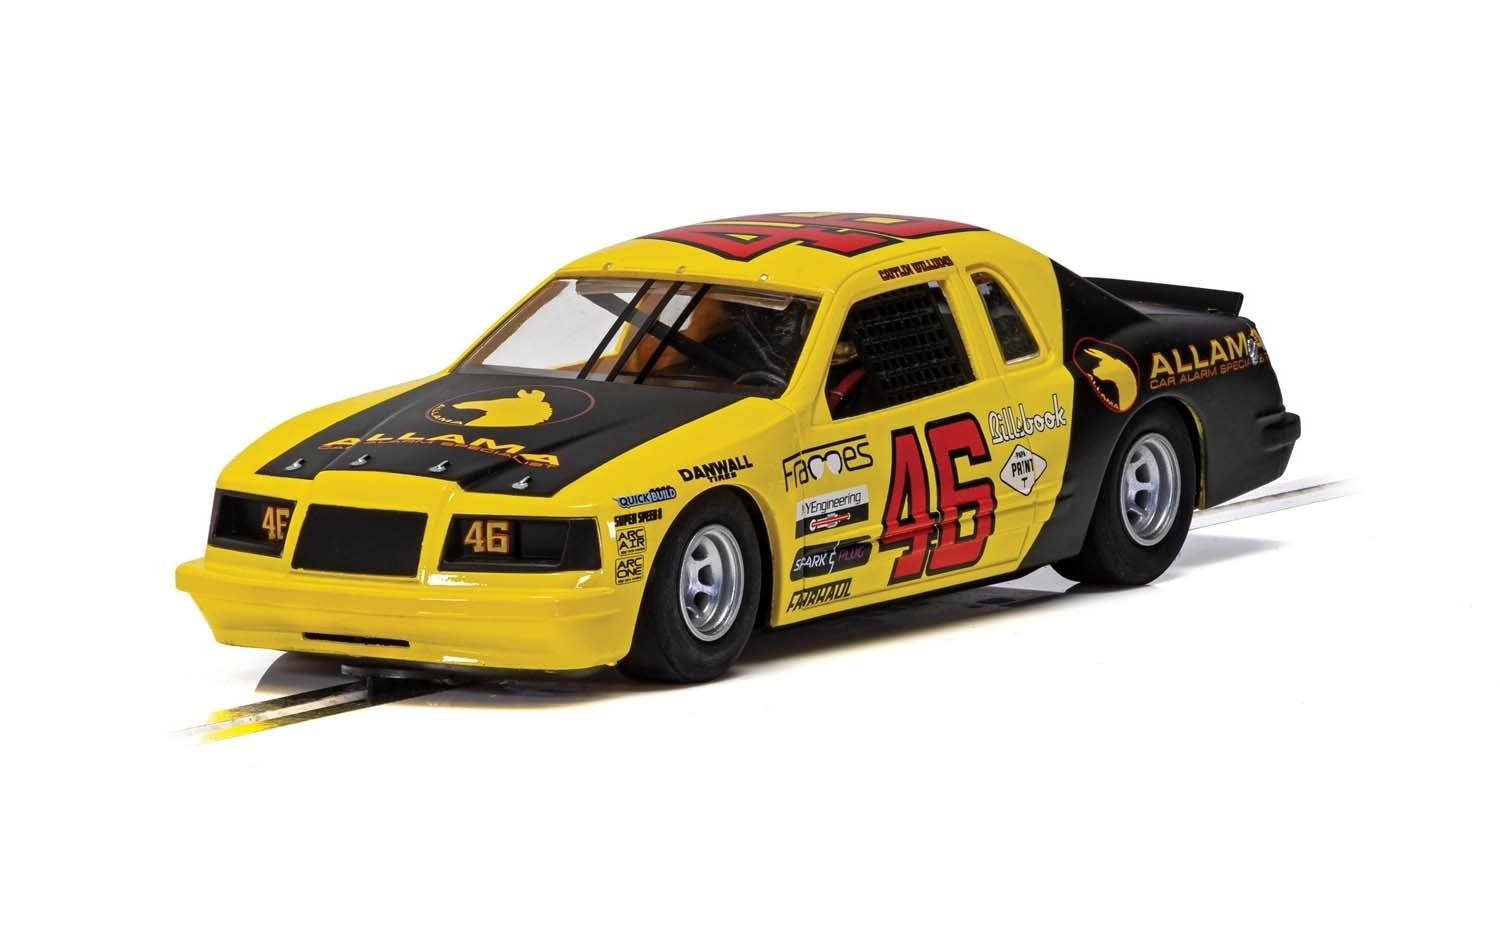 C4088 Scalextric Ford Tunderbird, Yellow & Black, No.46